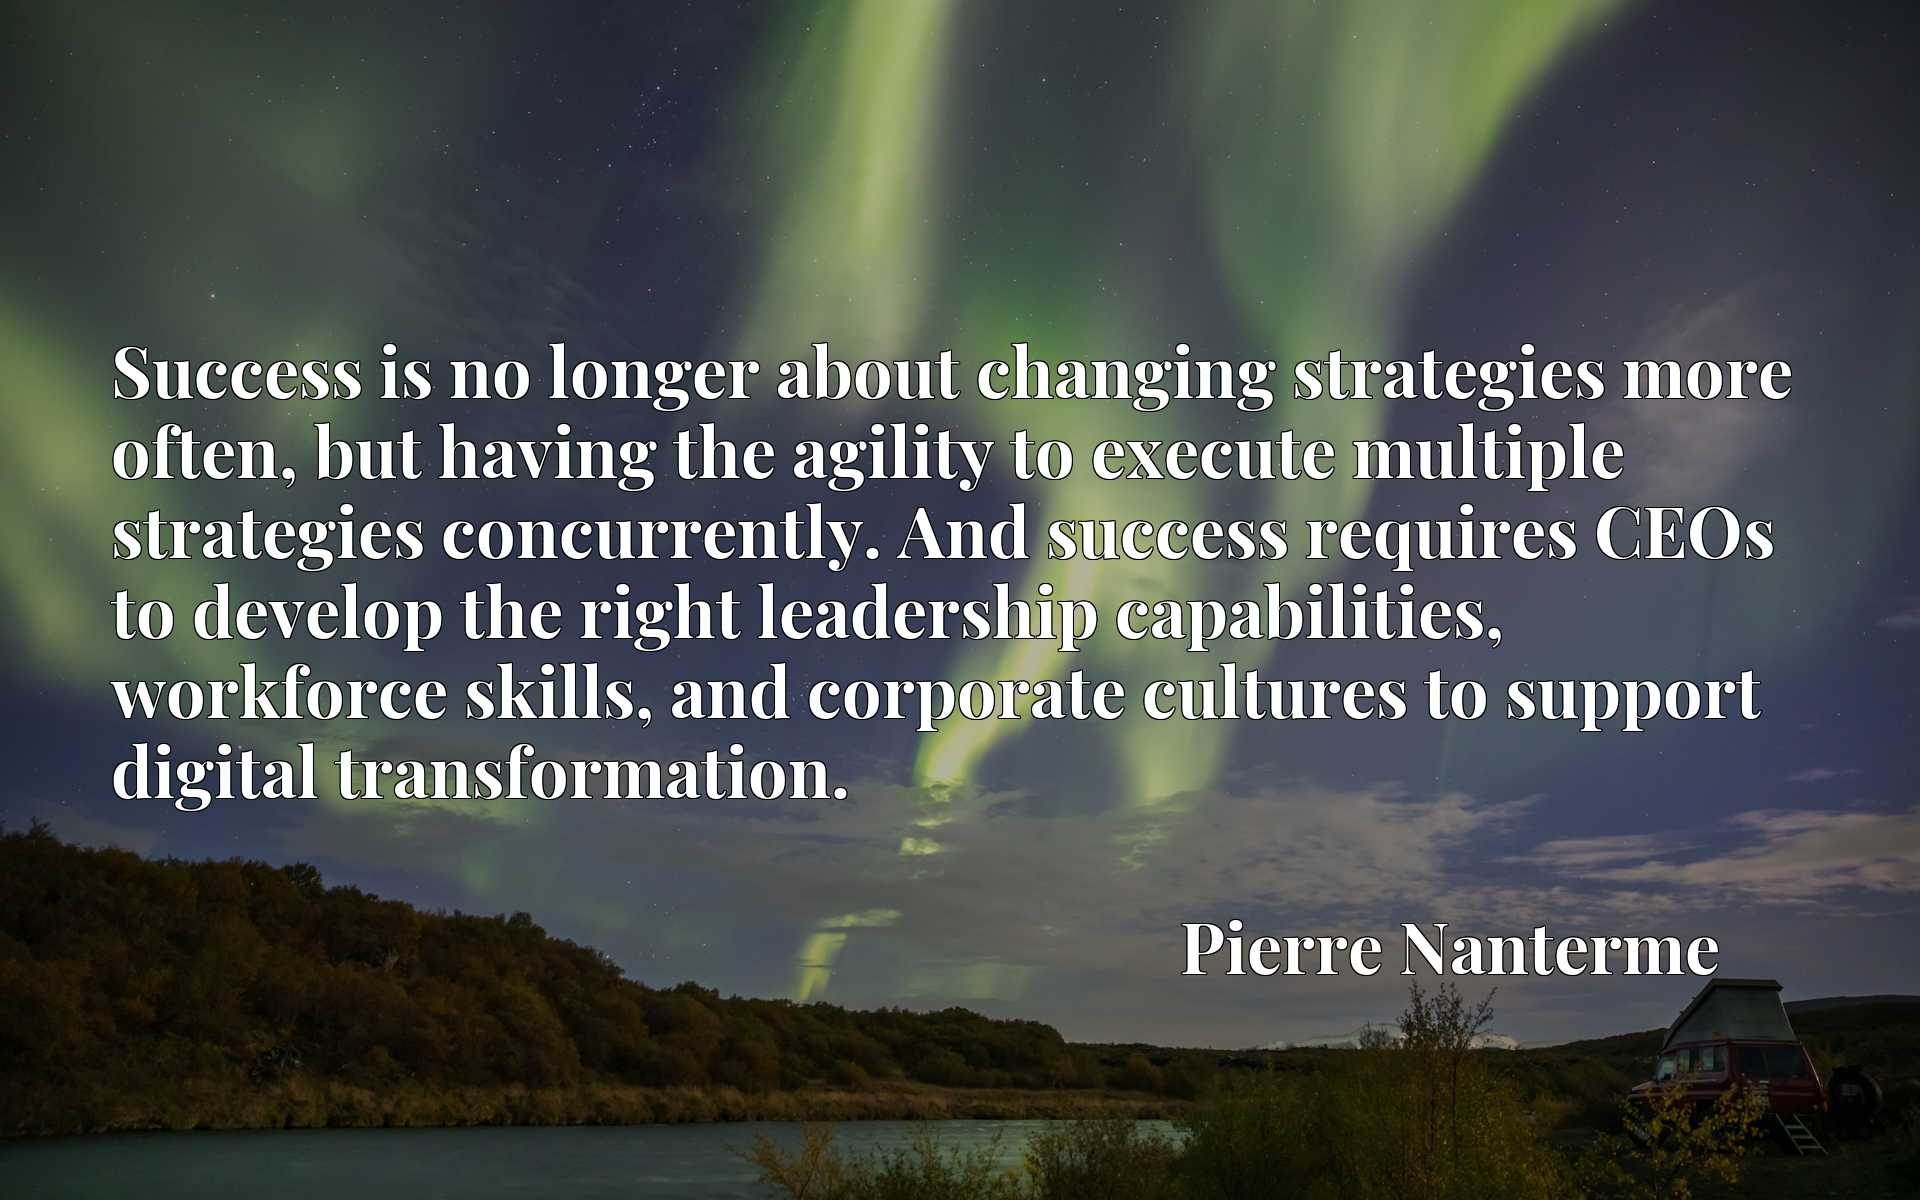 Quote Picture :Success is no longer about changing strategies more often, but having the agility to execute multiple strategies concurrently. And success requires CEOs to develop the right leadership capabilities, workforce skills, and corporate cultures to support digital transformation.